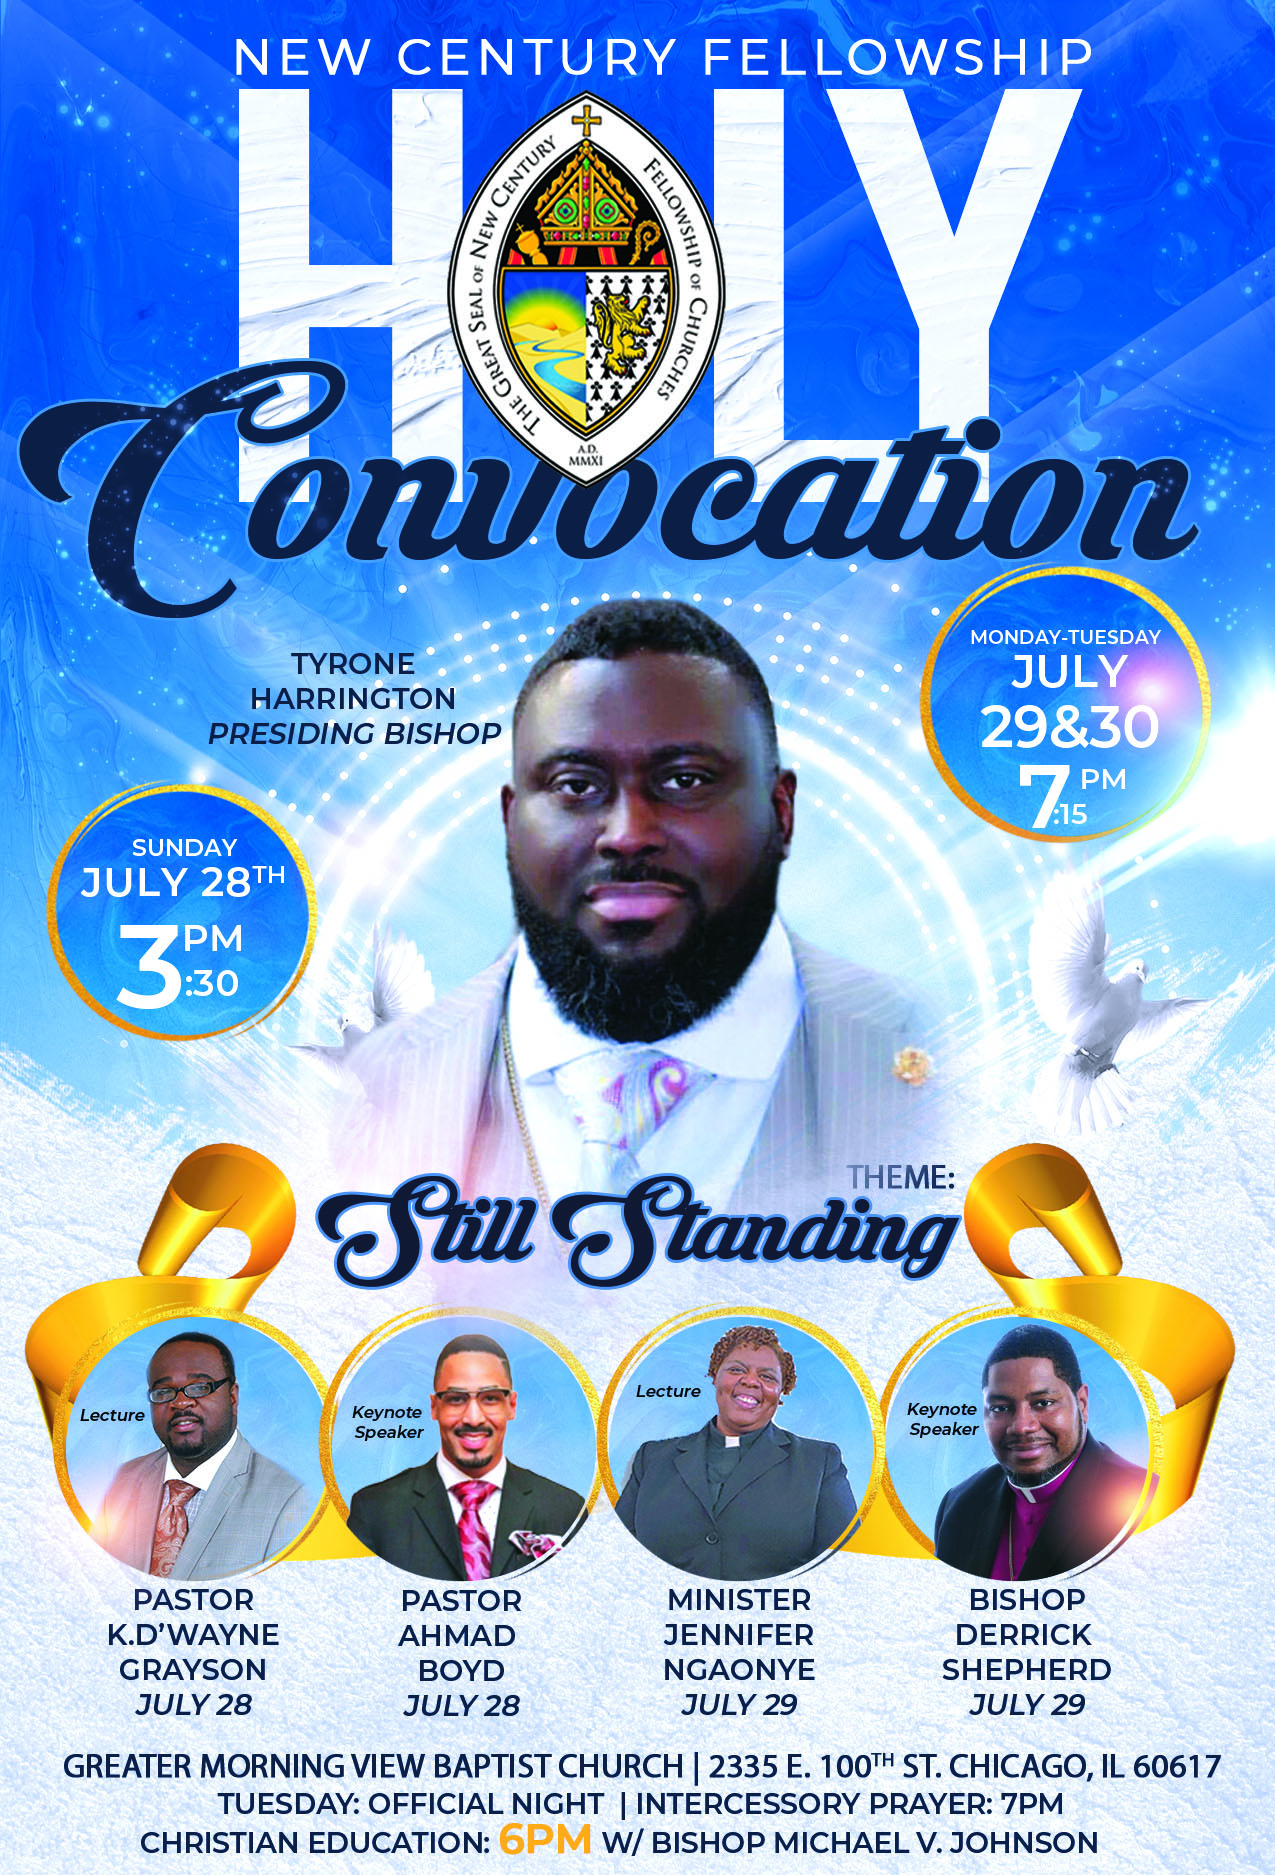 harrington convocation flyer REVISED